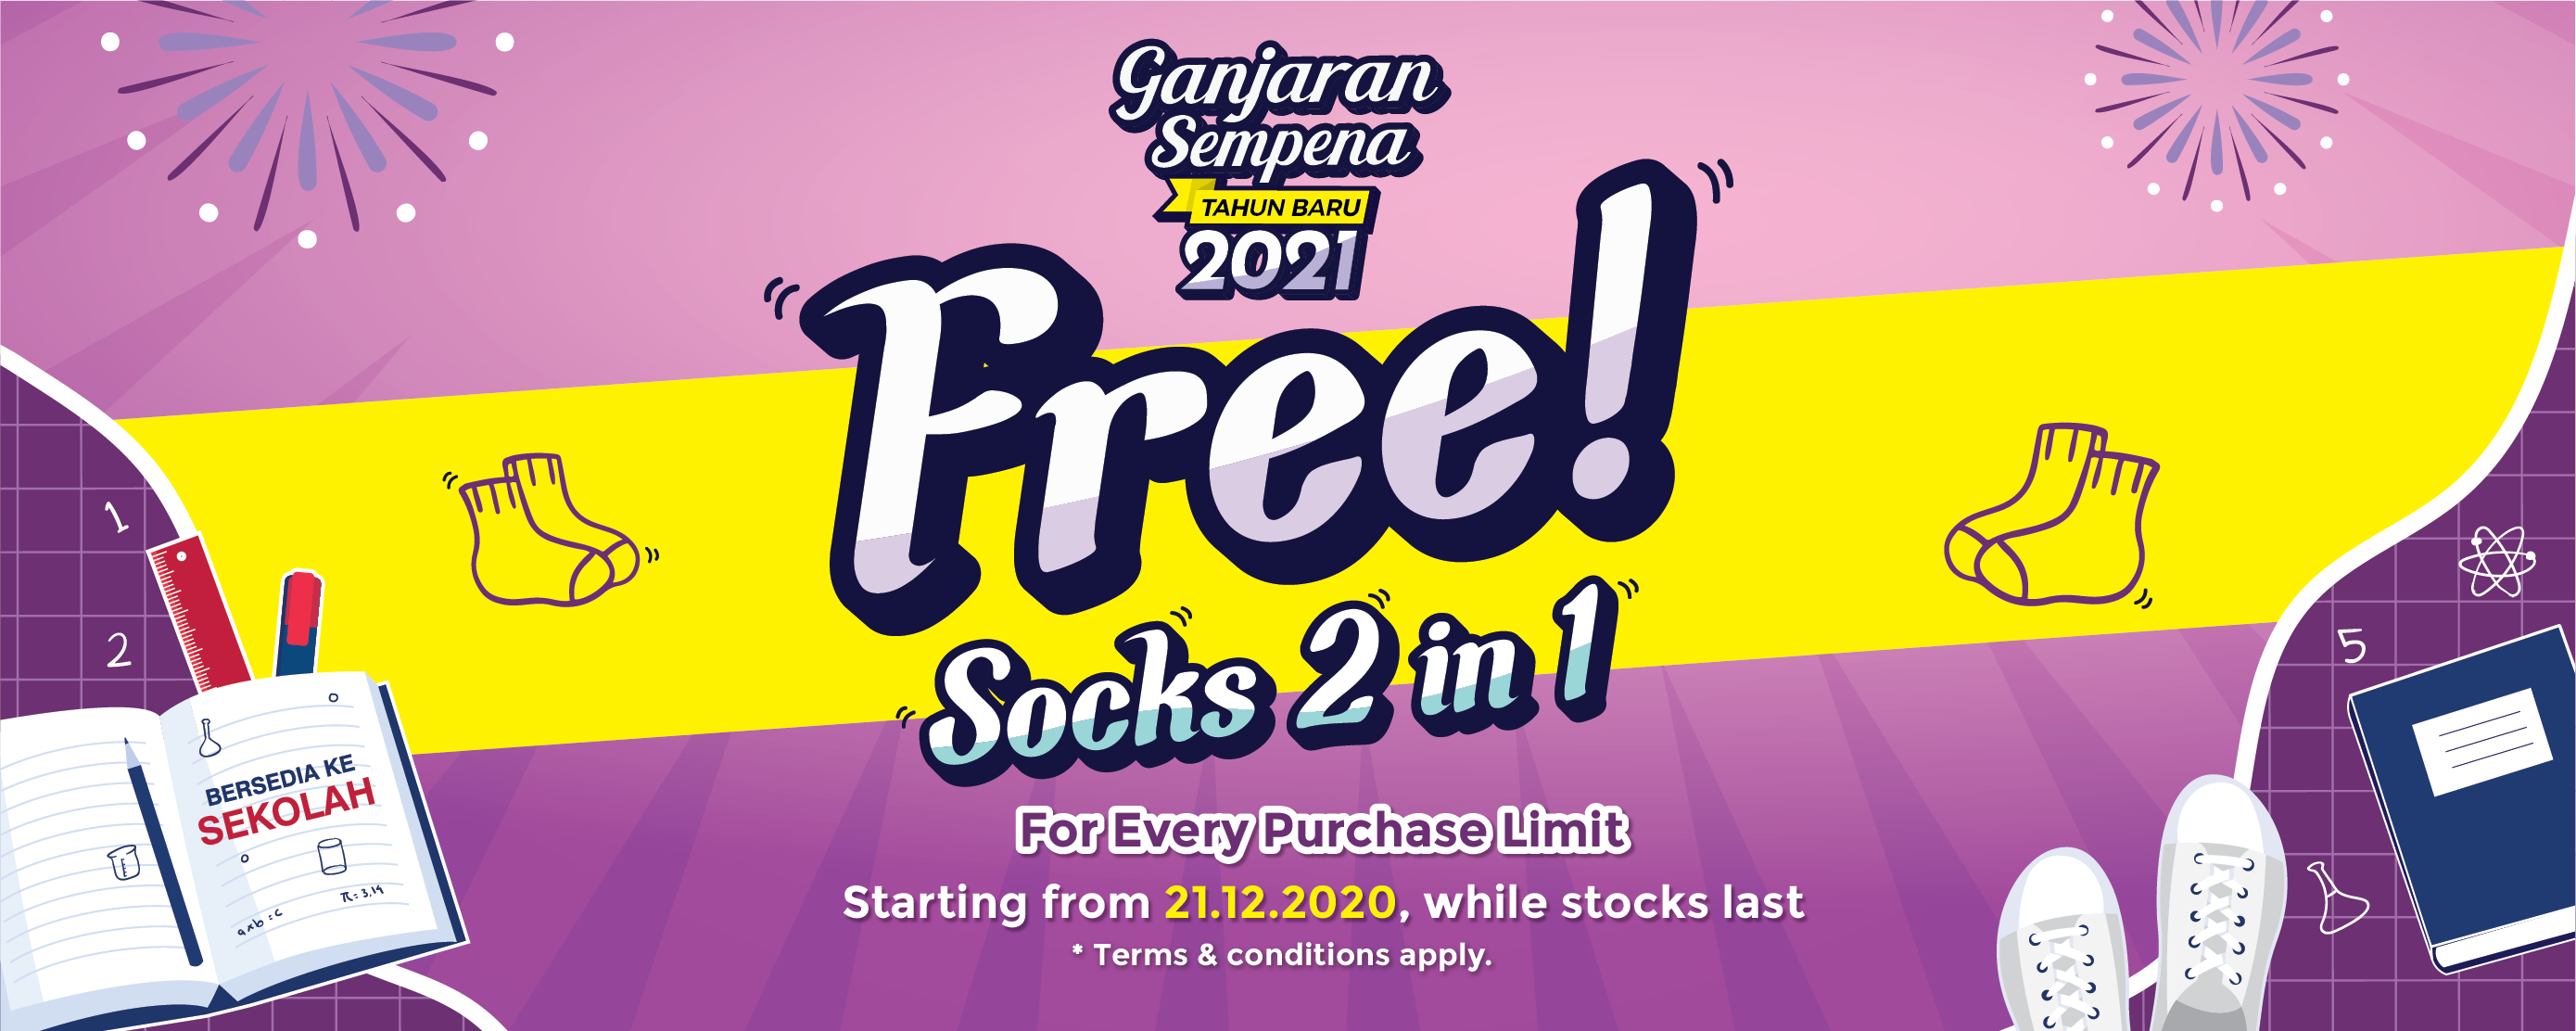 Free Socks Promotion